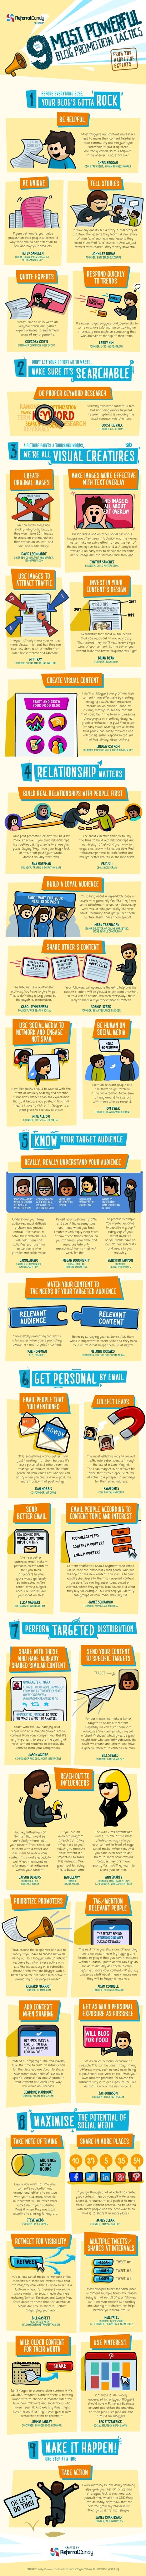 How to Promote Your Blog Effectively #Infographic | MarketingHits | Scoop.it